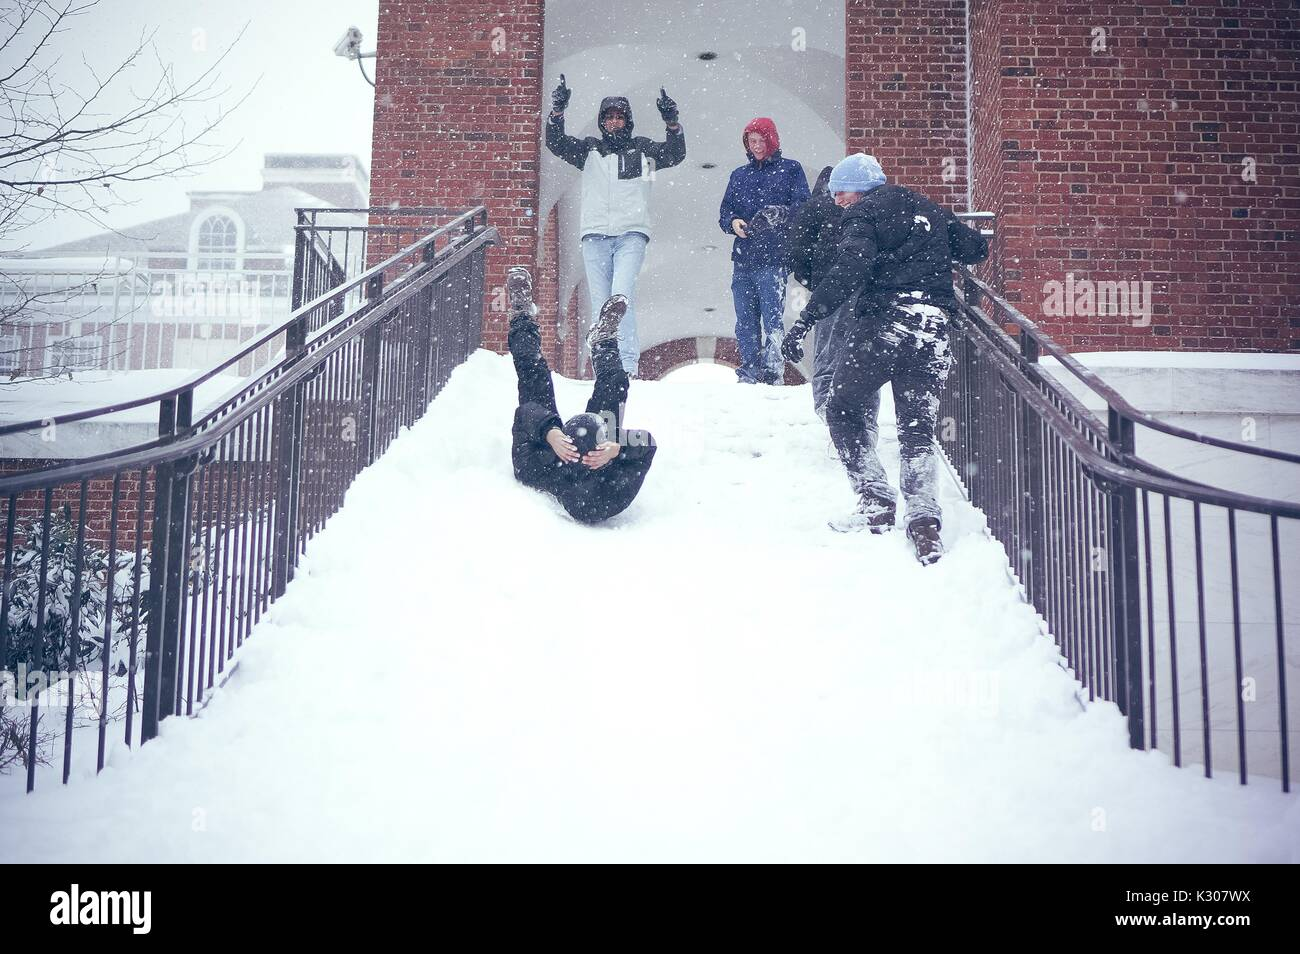 A student slides backward with legs in the air and arms around his head, down a snowy staircase while friends in - Stock Image